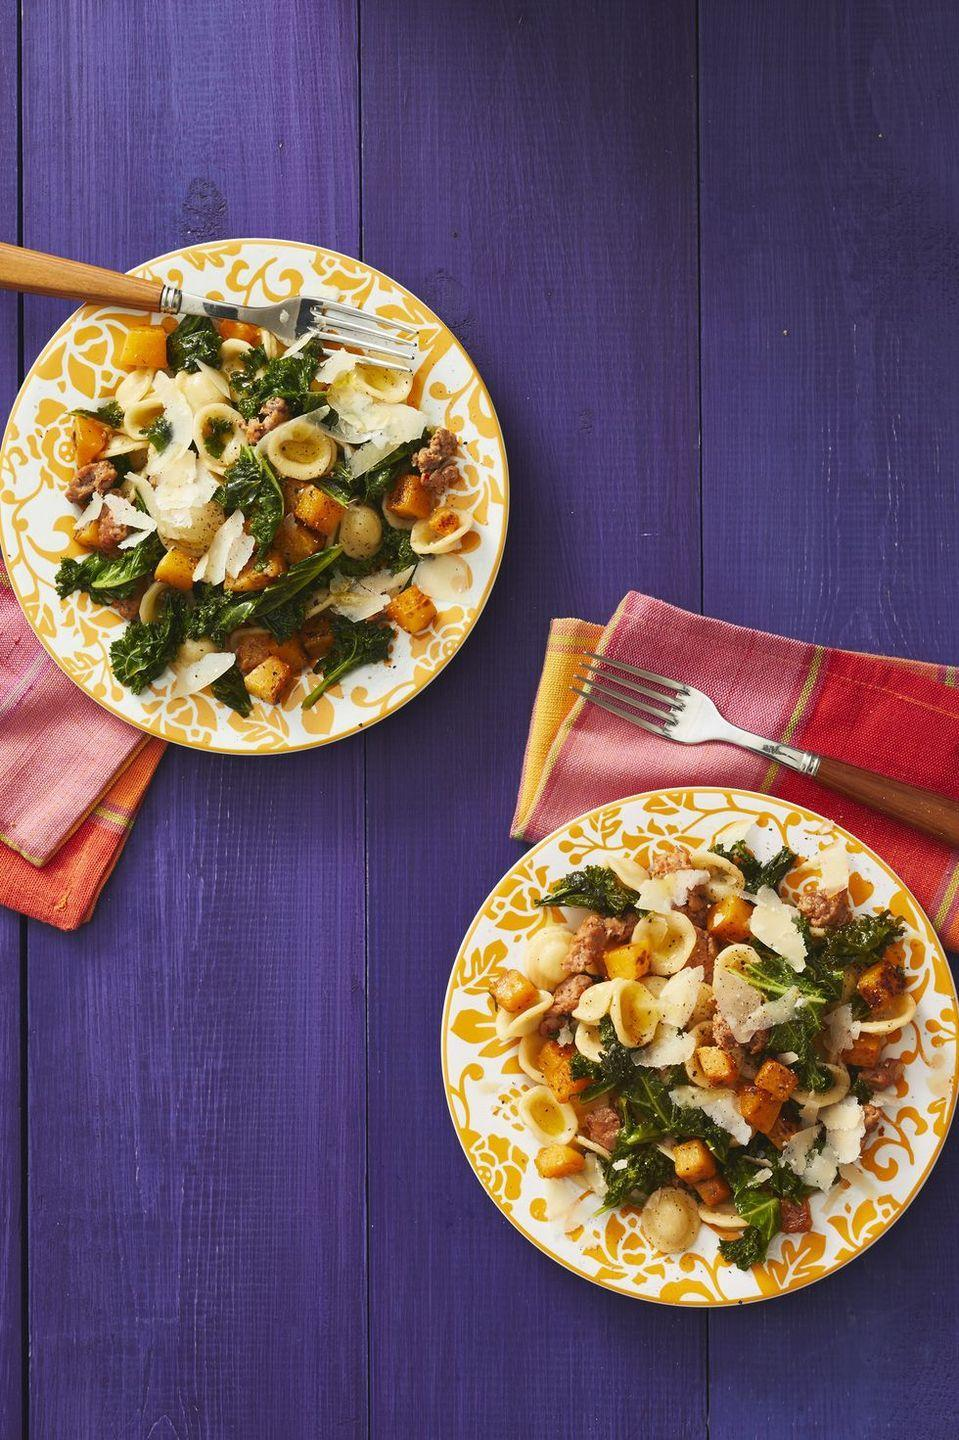 """<p>Come fall, there are tons of <a href=""""https://www.thepioneerwoman.com/food-cooking/meals-menus/g32945445/butternut-squash-recipes/"""" rel=""""nofollow noopener"""" target=""""_blank"""" data-ylk=""""slk:butternut squash recipes"""" class=""""link rapid-noclick-resp"""">butternut squash recipes</a> worth trying—and this should definitely be one of them! It's cozy, comforting, and easy to make in under an hour! </p><p><a href=""""https://www.thepioneerwoman.com/food-cooking/recipes/a32946296/orecchiette-with-butternut-squash-kale-and-sausage-recipe/"""" rel=""""nofollow noopener"""" target=""""_blank"""" data-ylk=""""slk:Get Ree's recipe."""" class=""""link rapid-noclick-resp""""><strong>Get Ree's recipe. </strong></a></p><p><a class=""""link rapid-noclick-resp"""" href=""""https://go.redirectingat.com?id=74968X1596630&url=https%3A%2F%2Fwww.walmart.com%2Fsearch%2F%3Fquery%3Dstock%2Bpots&sref=https%3A%2F%2Fwww.thepioneerwoman.com%2Ffood-cooking%2Fmeals-menus%2Fg37078352%2Fitalian-sausage-recipes%2F"""" rel=""""nofollow noopener"""" target=""""_blank"""" data-ylk=""""slk:SHOP POTS"""">SHOP POTS</a></p>"""